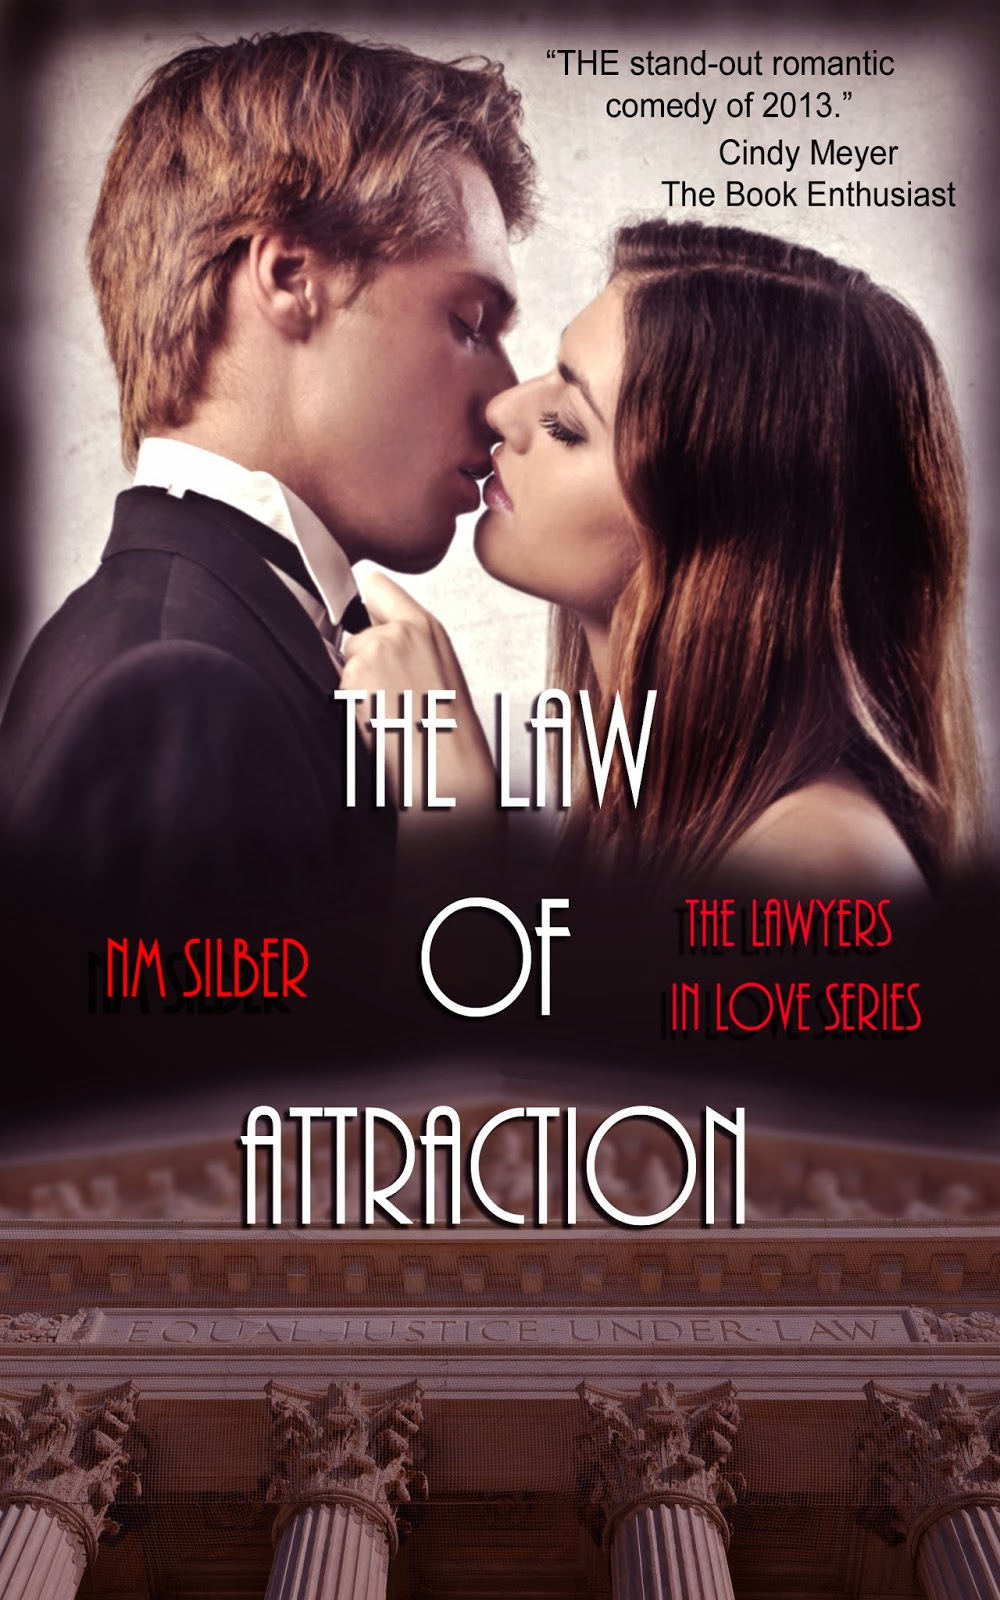 https://www.goodreads.com/book/show/17931665-the-law-of-attraction